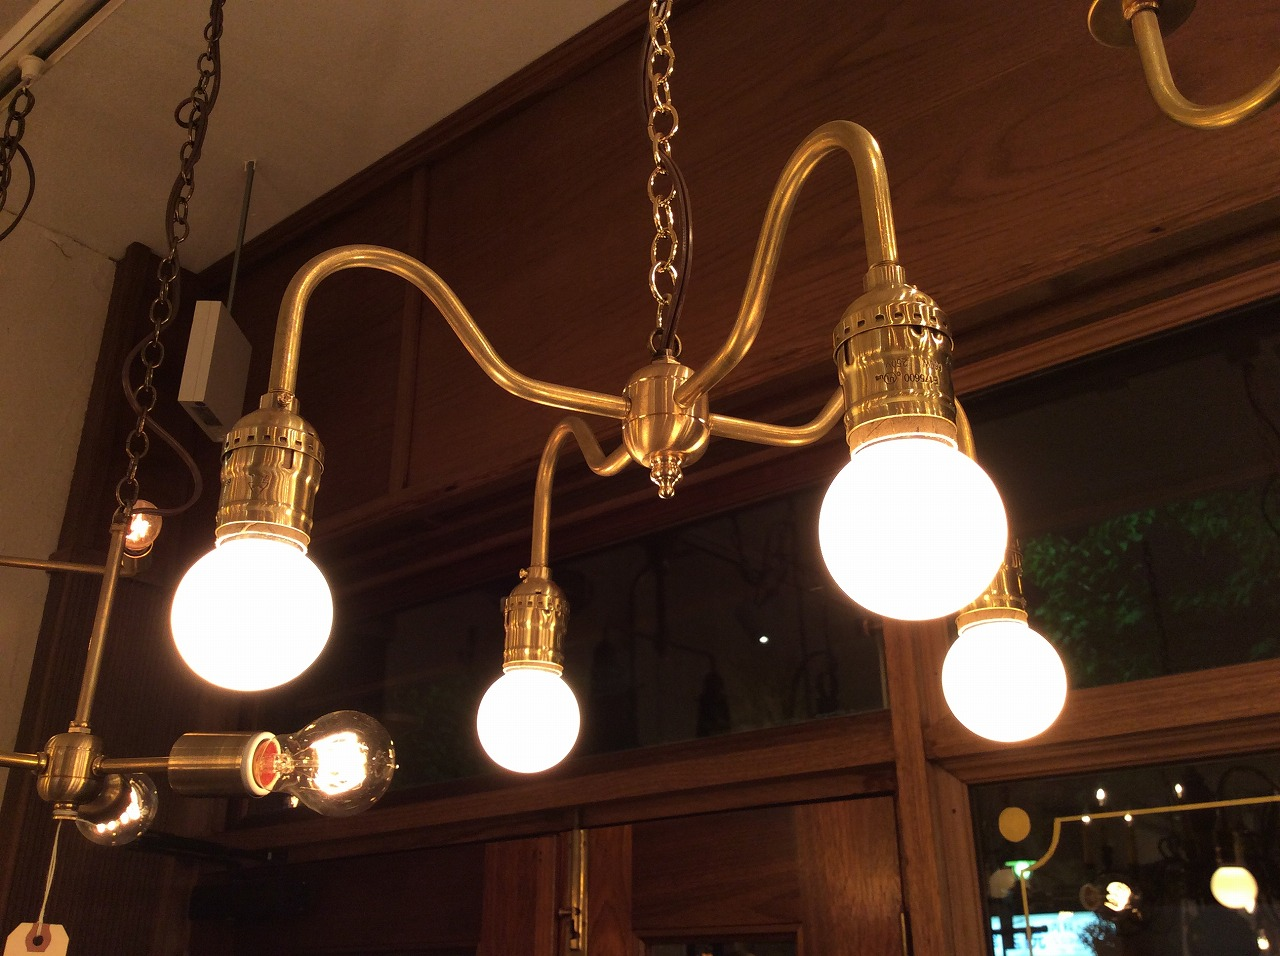 Original 4-bulbs light.